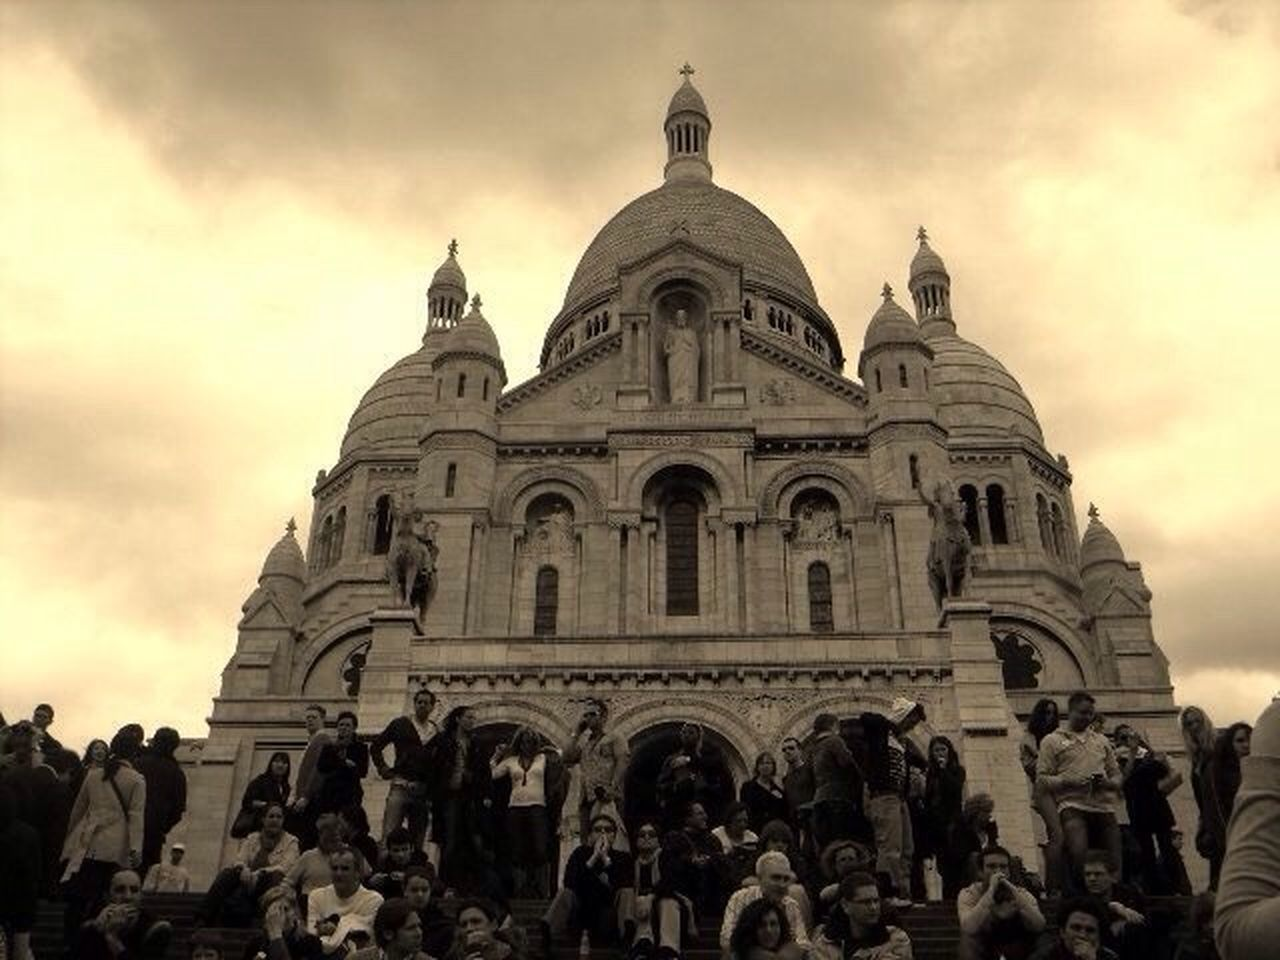 Architecture Large Group Of People Travel Destinations Building Exterior Built Structure Religion City Place Of Worship History Real People Day People J'adore La France Sacre Coeur Montmartre France La France Sacre Coeur Paris, France  EyeEm Best Shots EyeEm Gallery EyeEm Best Shots - Architecture Famous Building Sepia Montmartre, Paris